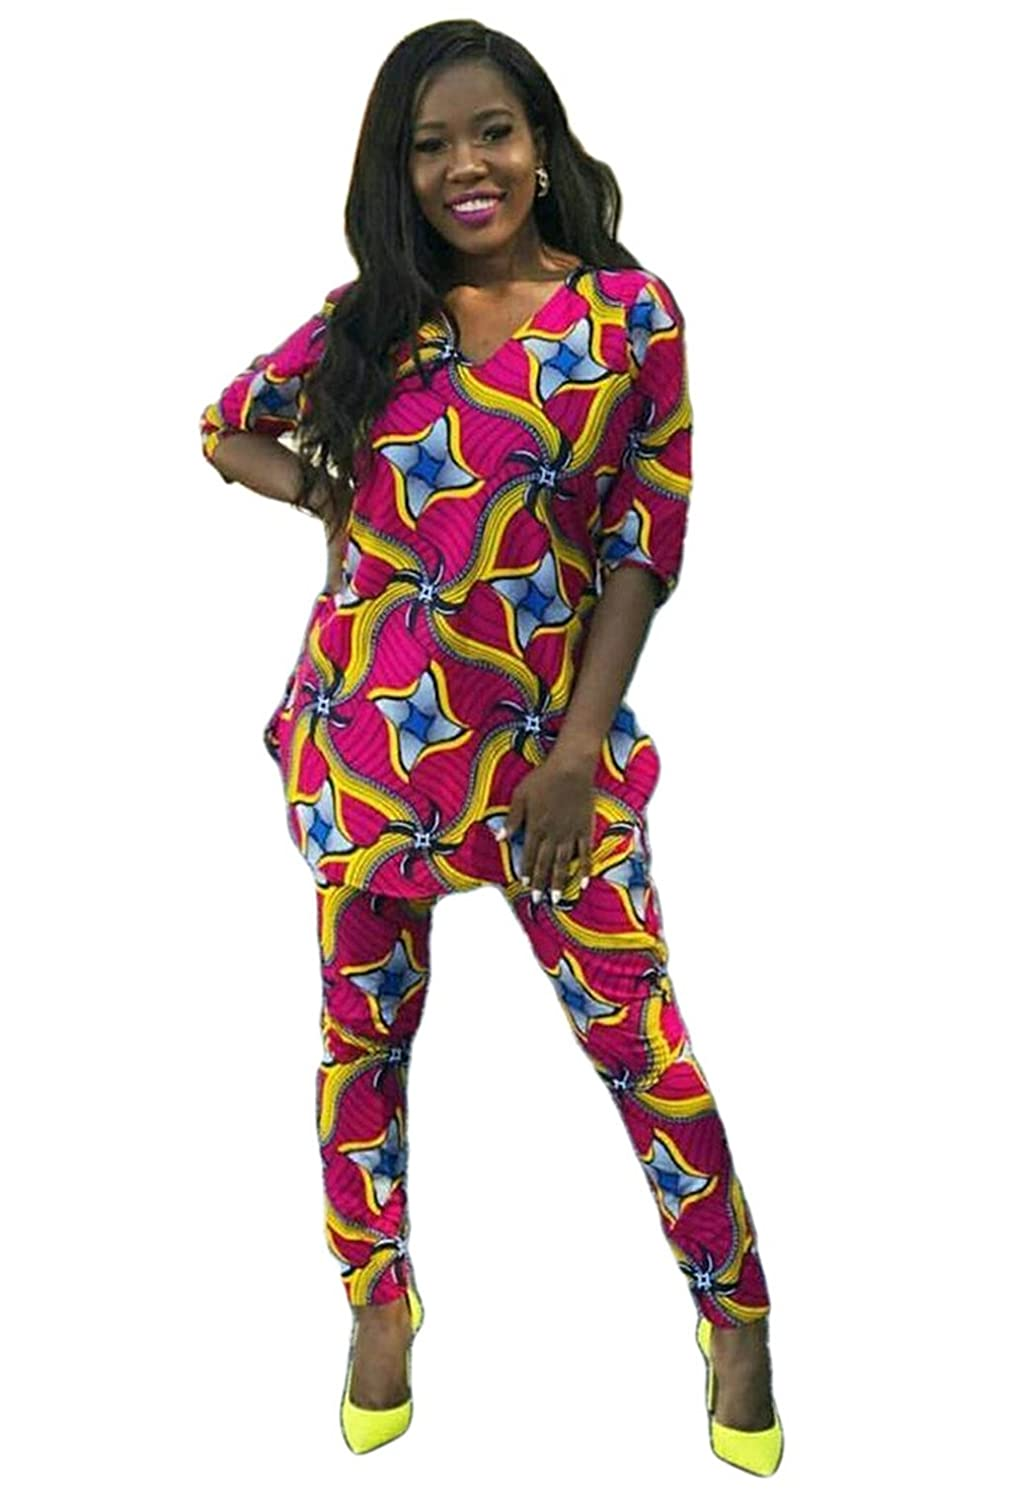 Doris Women's African Print 34 Sleeve Tunic Tops And Long Pants Set At Amazon Clothing Store: African Wedding Dresses Monique Kindl At Reisefeber.org